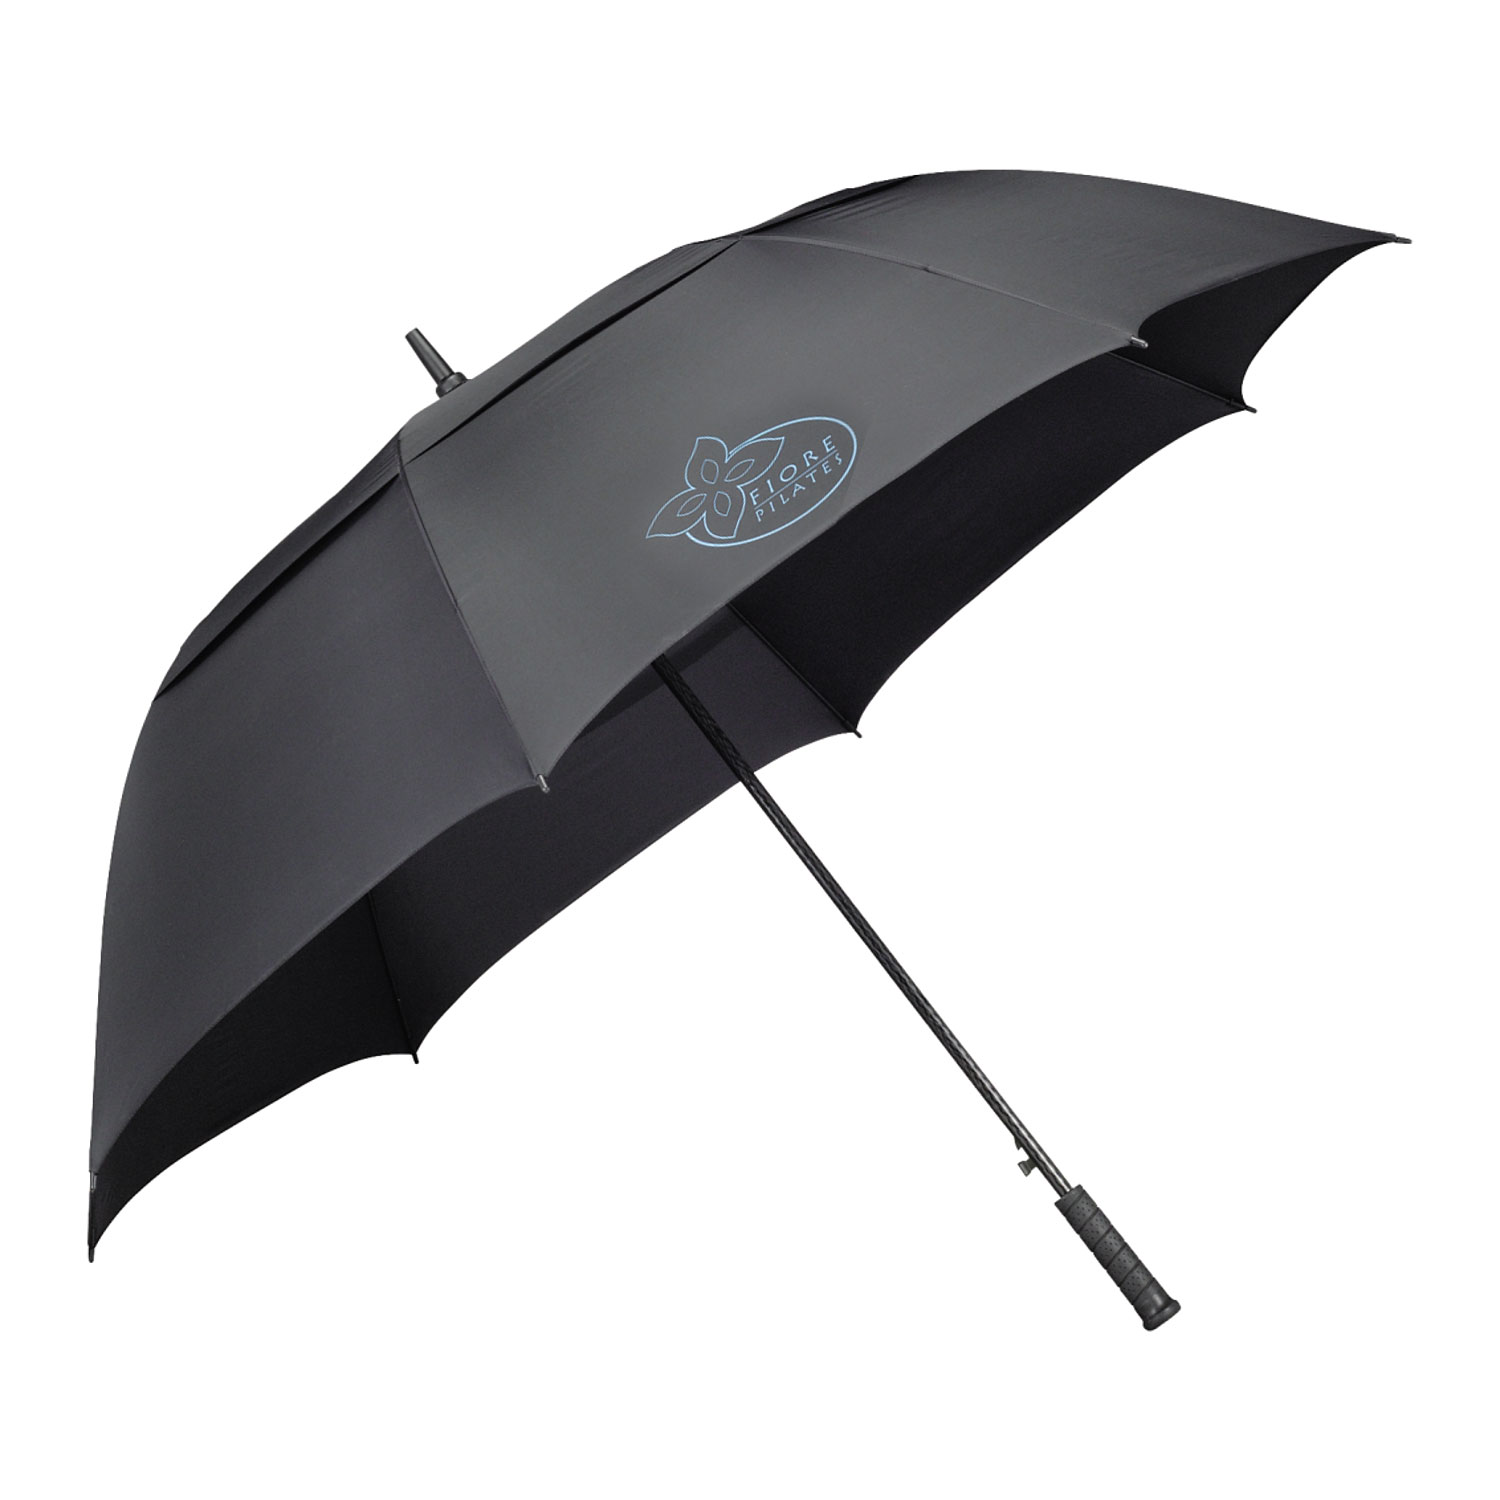 Slazenger  64 Auto Open Golf Umbrella